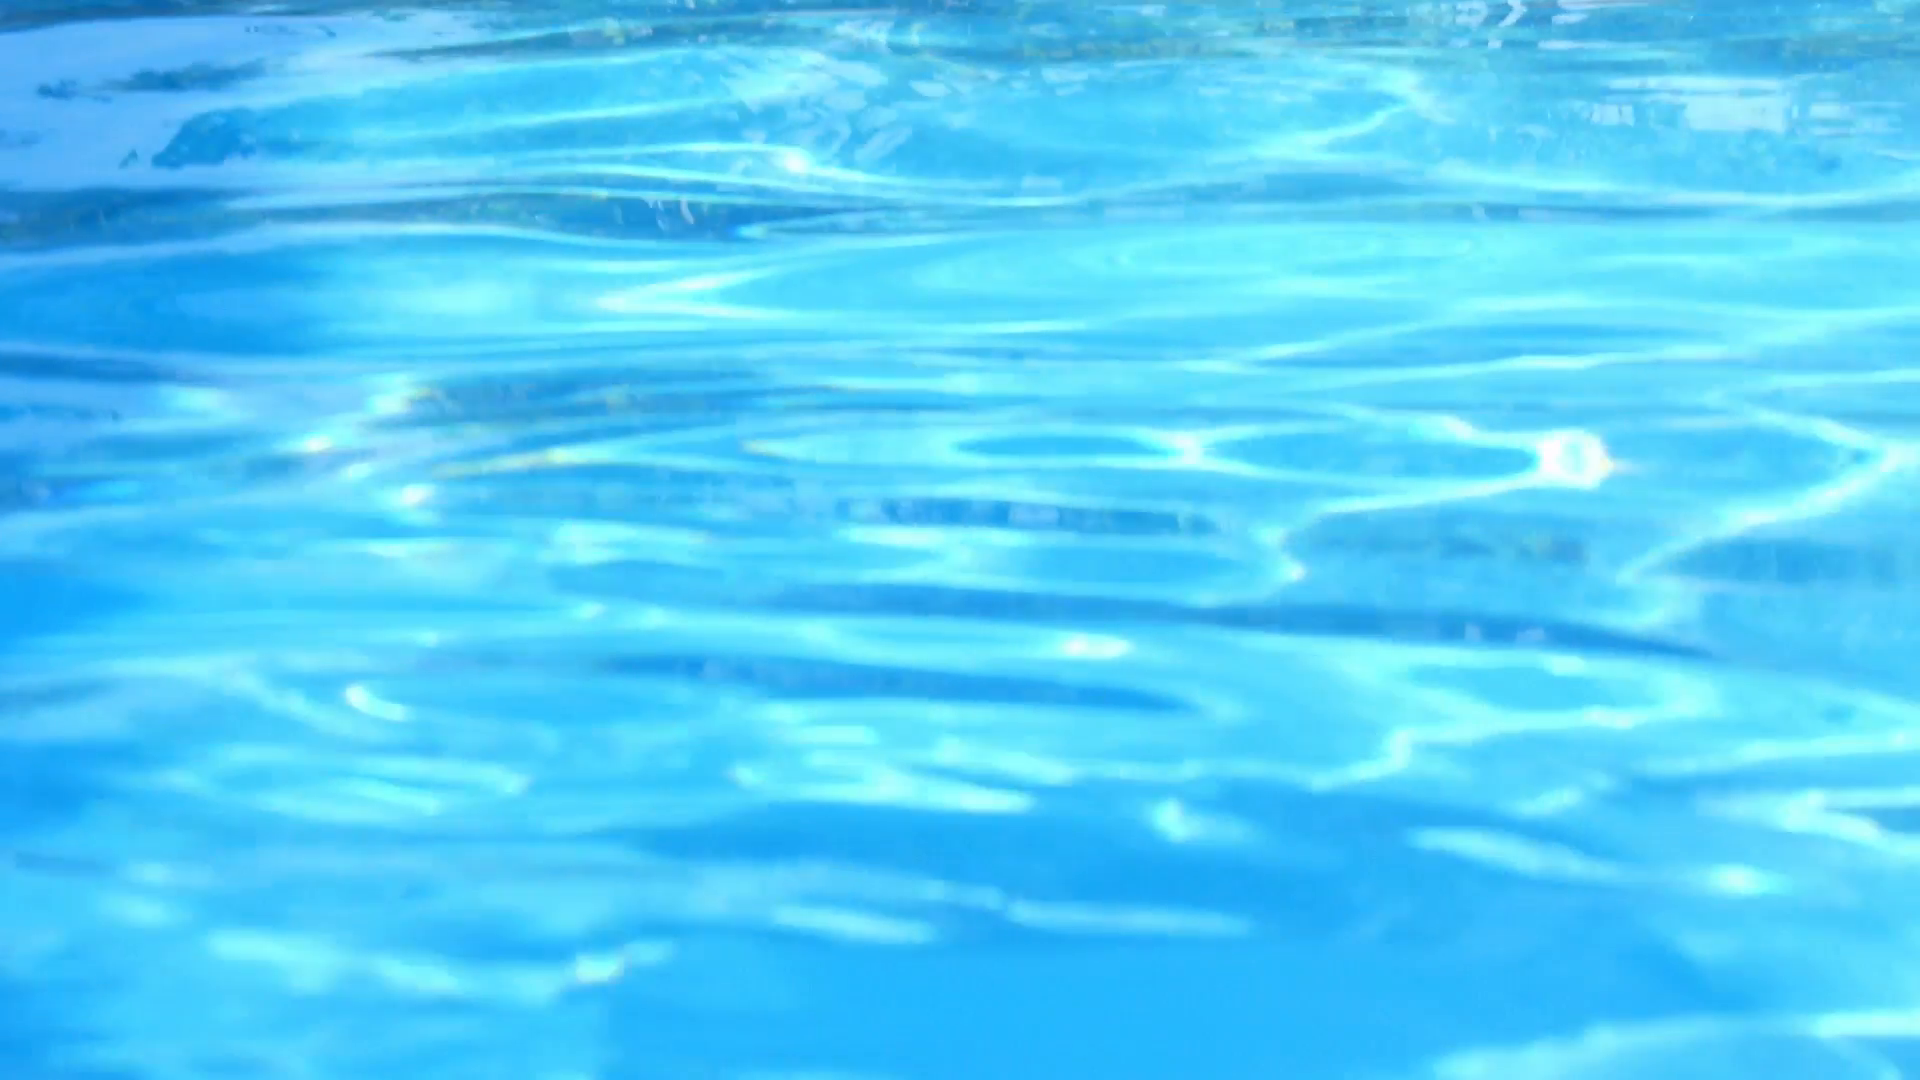 Swimming Pool Water Surface With Sparkli #638570.